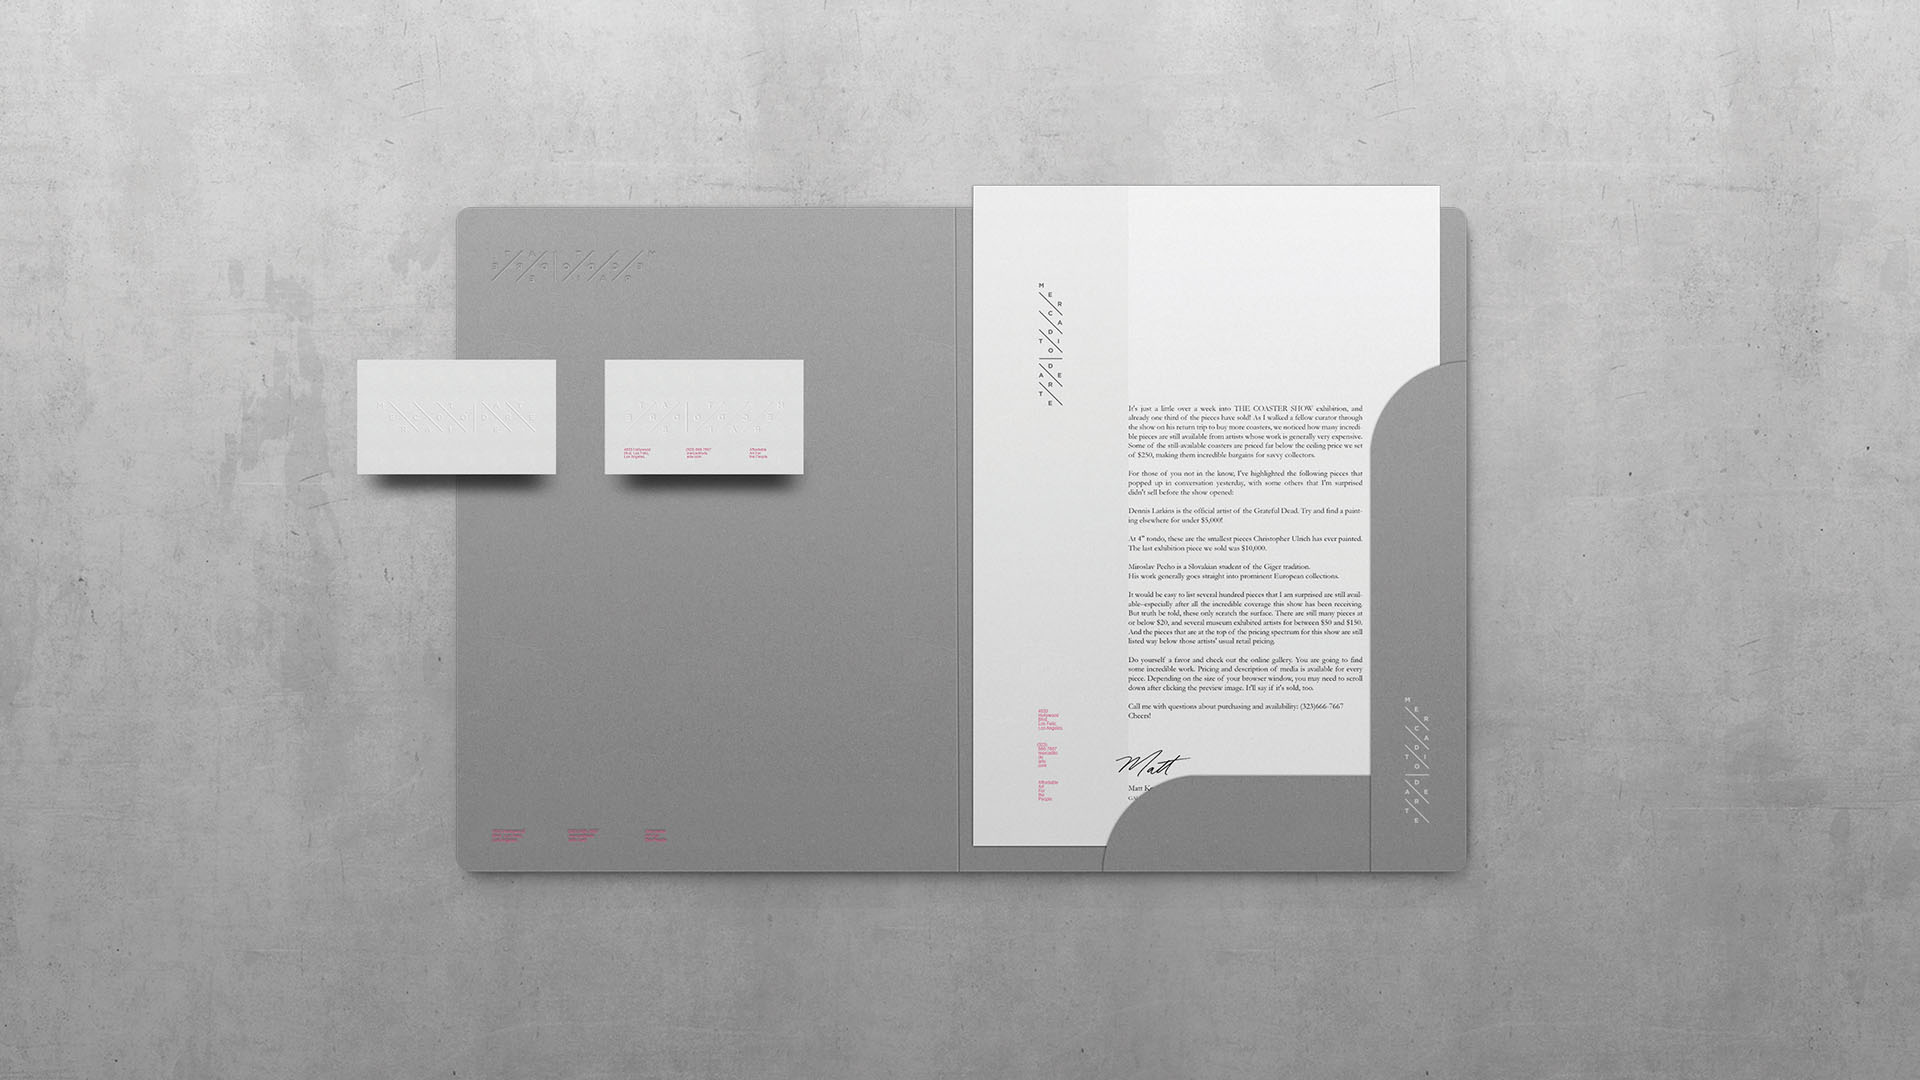 branding, stationery, concrete, minimalist, top view, folder, letterhead, business cards